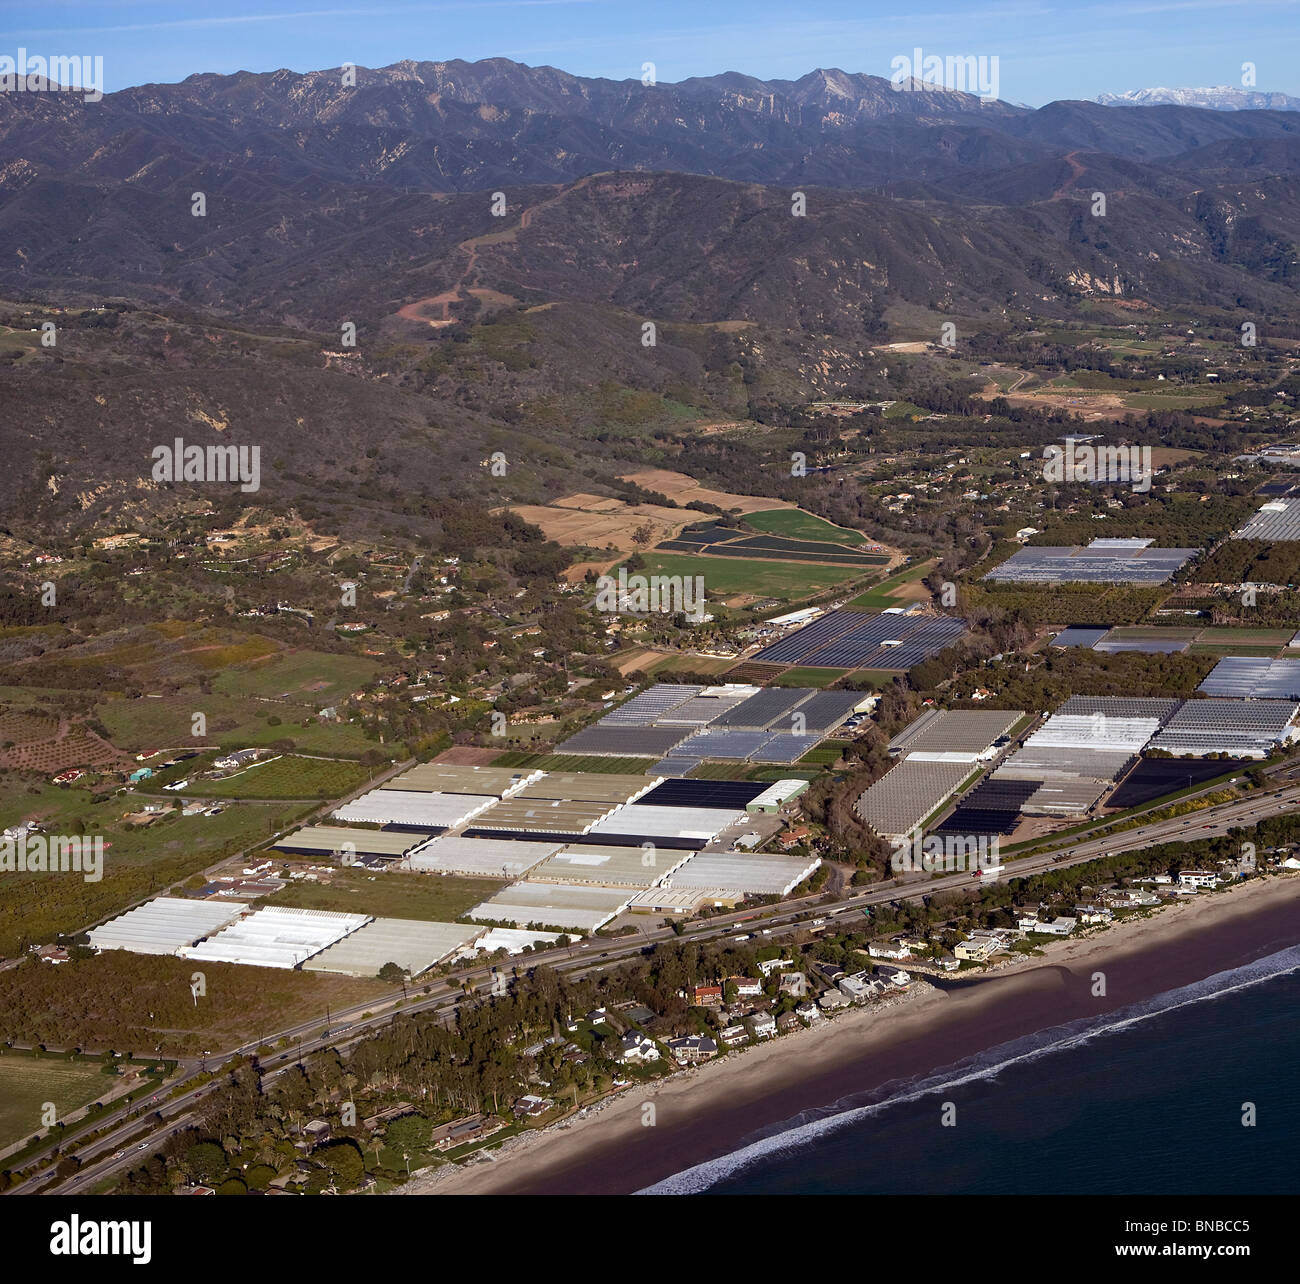 aerial view above nurseries greenhouses Santa Barbara county California - Stock Image